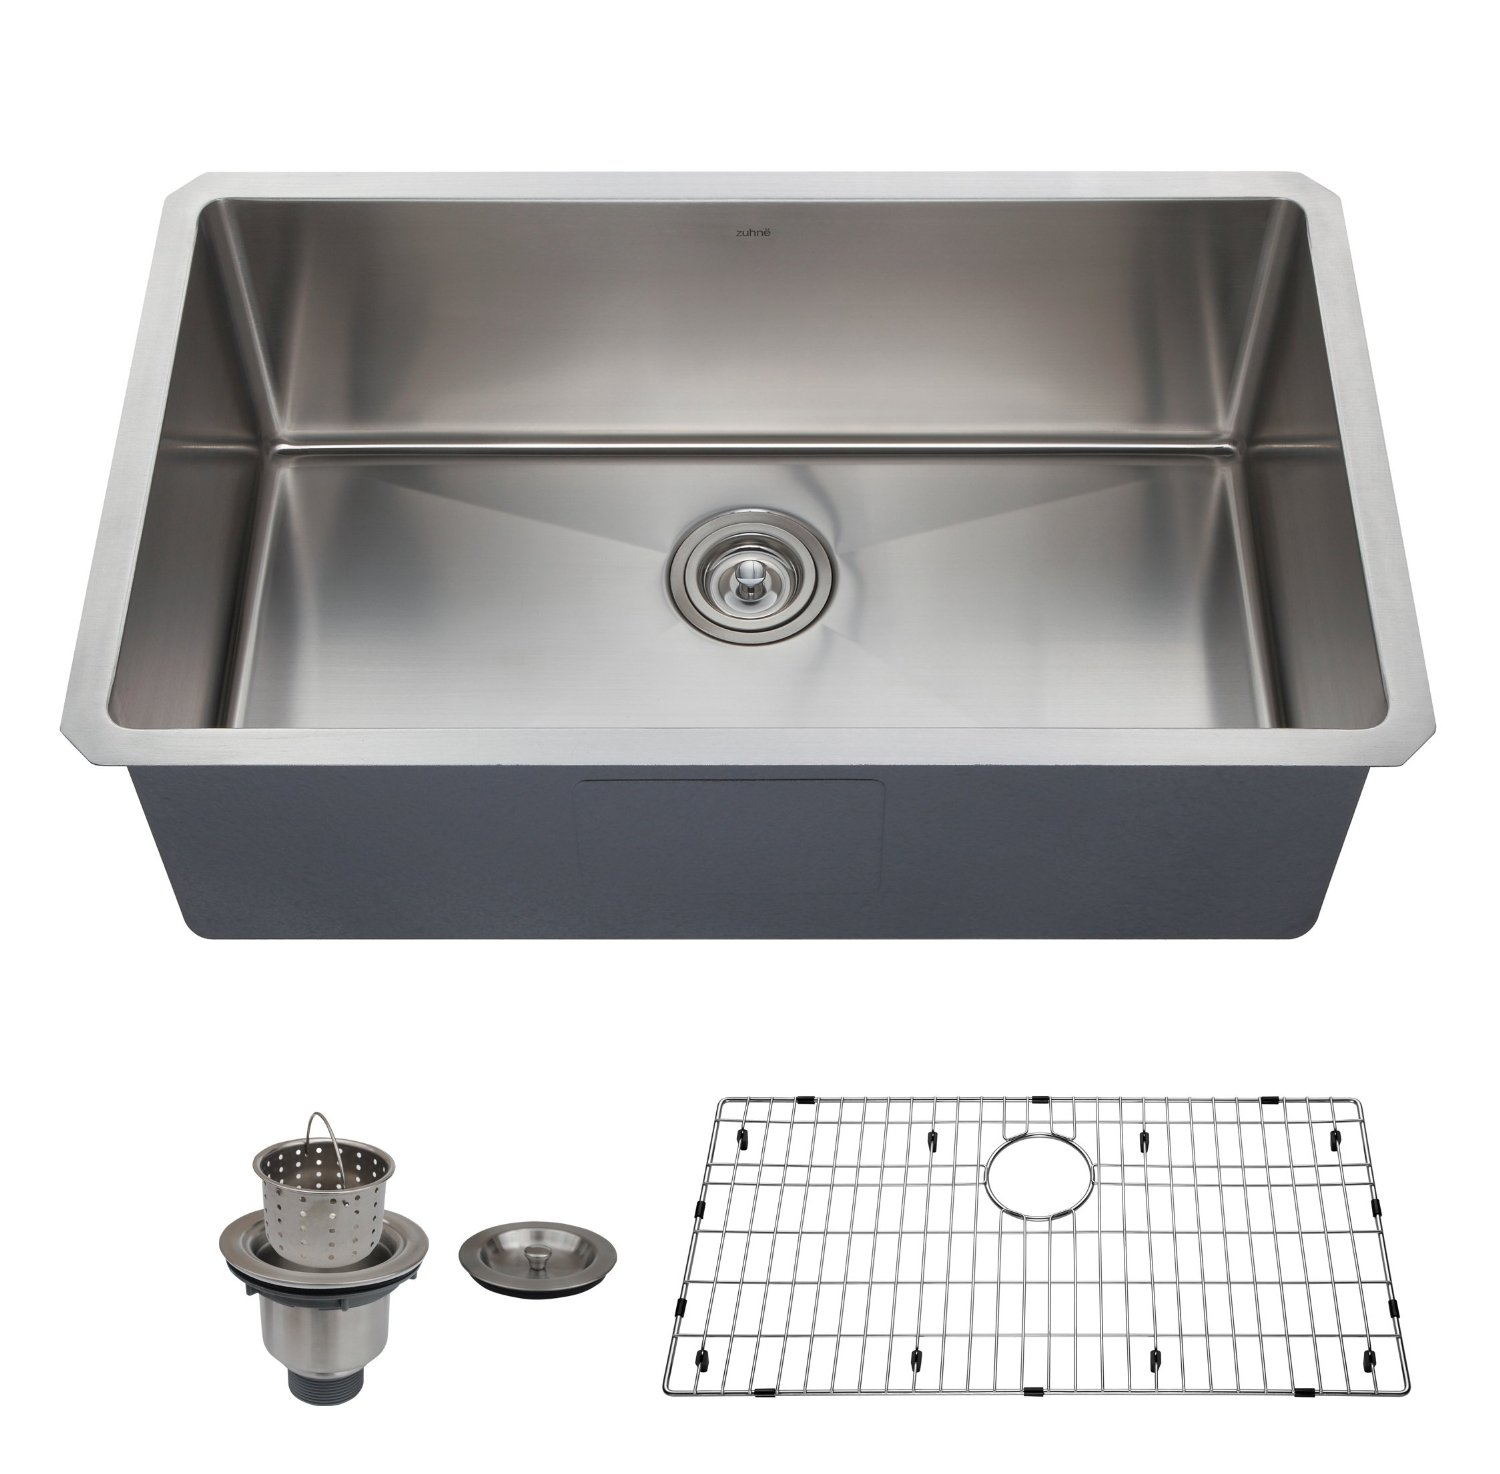 Stone Farmhouse Sink Lowest Price Best Single Bowl Kitchen Sink Reviews Buying Guide Bkfh